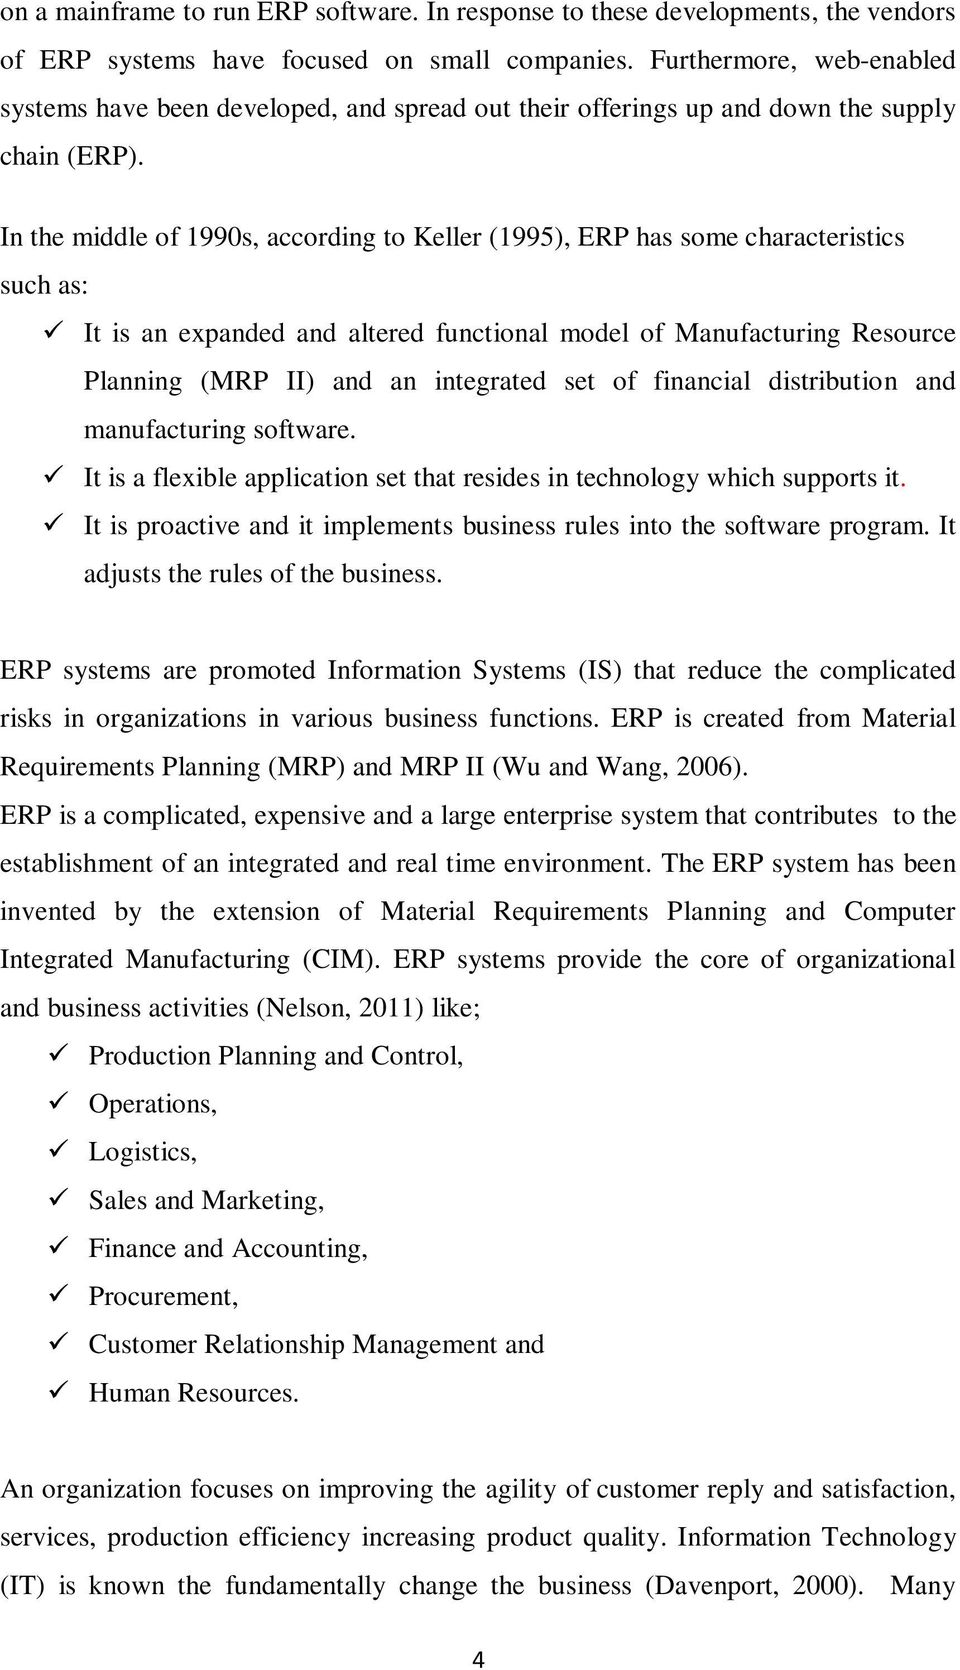 In the middle of 1990s, according to Keller (1995), ERP has some characteristics such as: It is an expanded and altered functional model of Manufacturing Resource Planning (MRP II) and an integrated